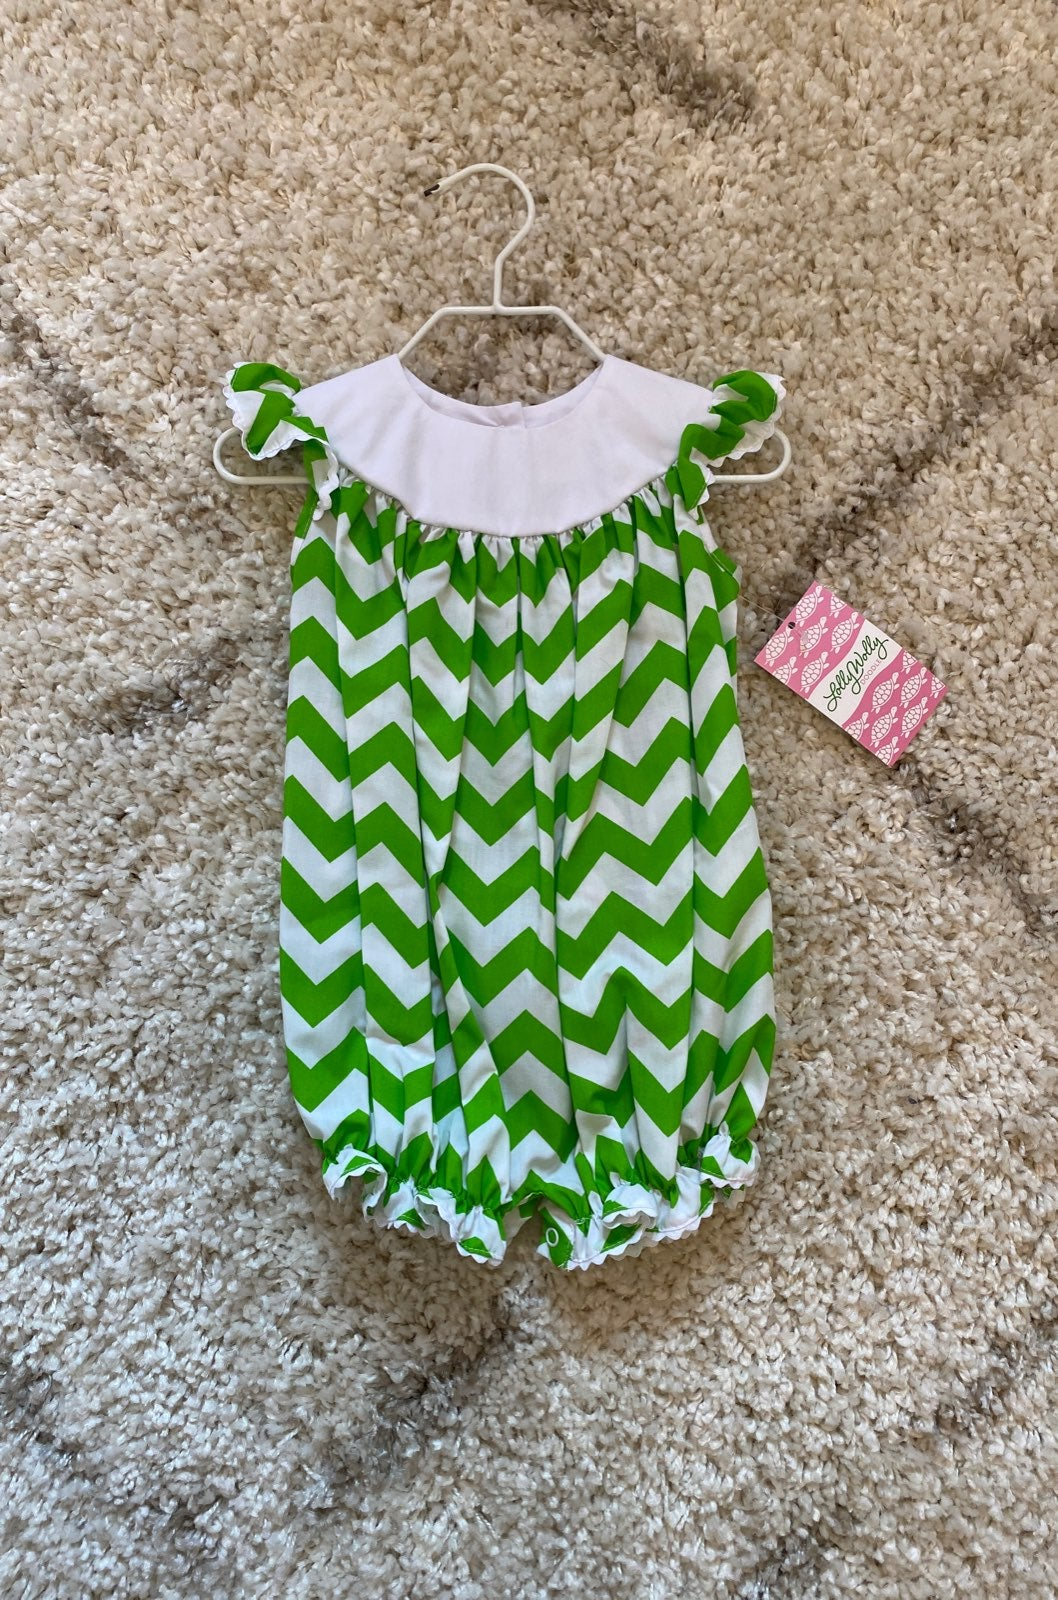 Lolly Wolly Doodle Lime Green Chevron Ro